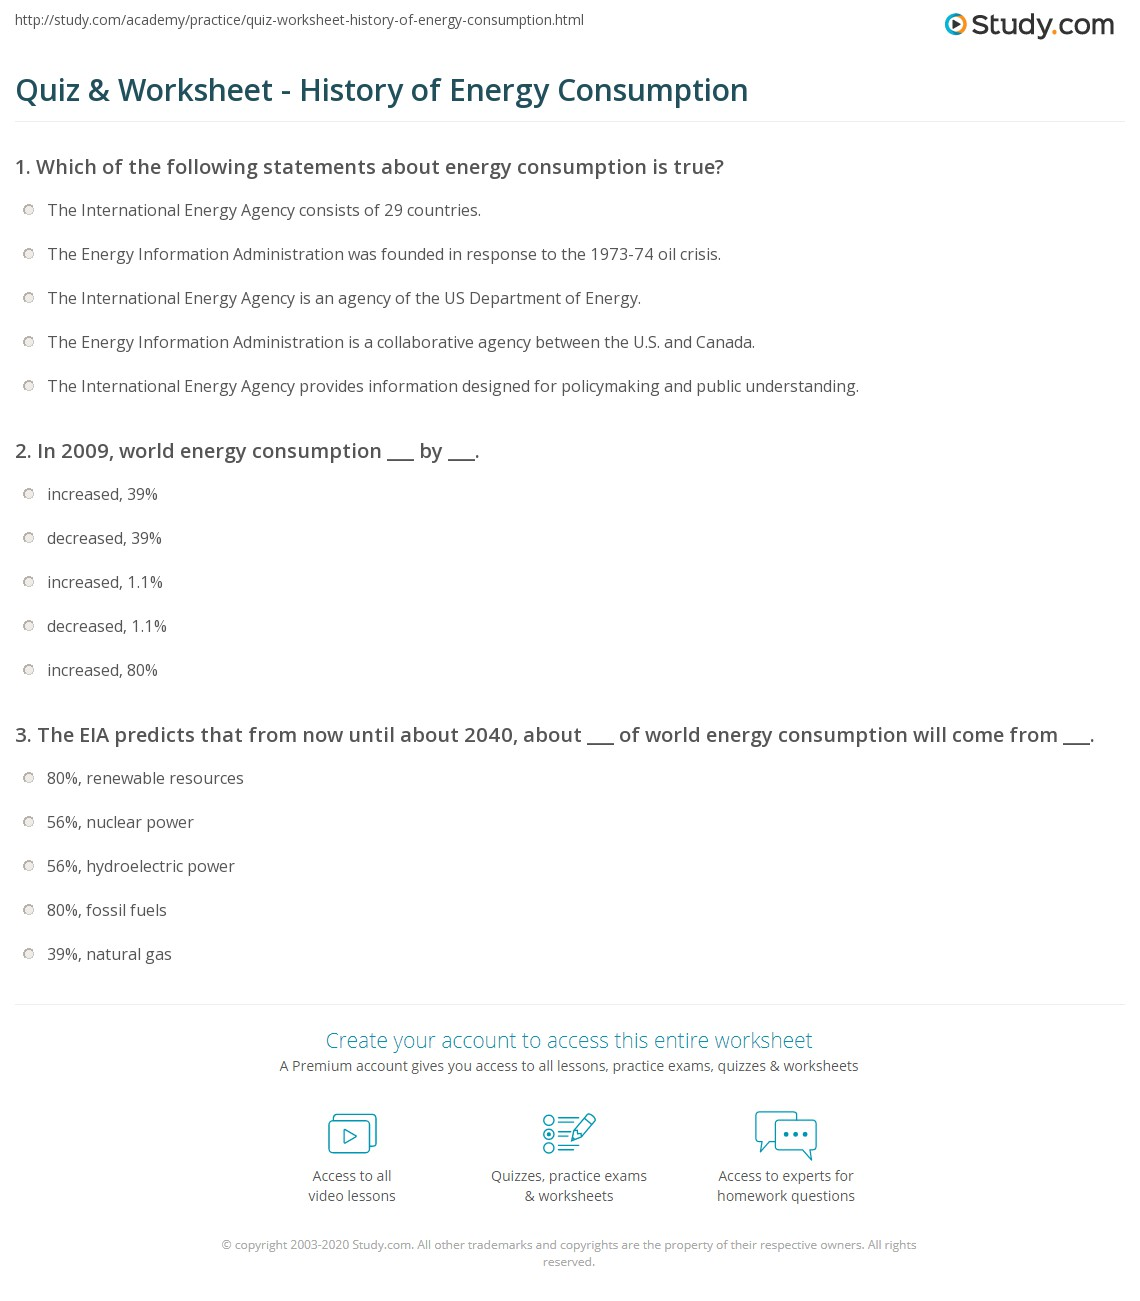 Quiz & Worksheet - History of Energy Consumption | Study.com